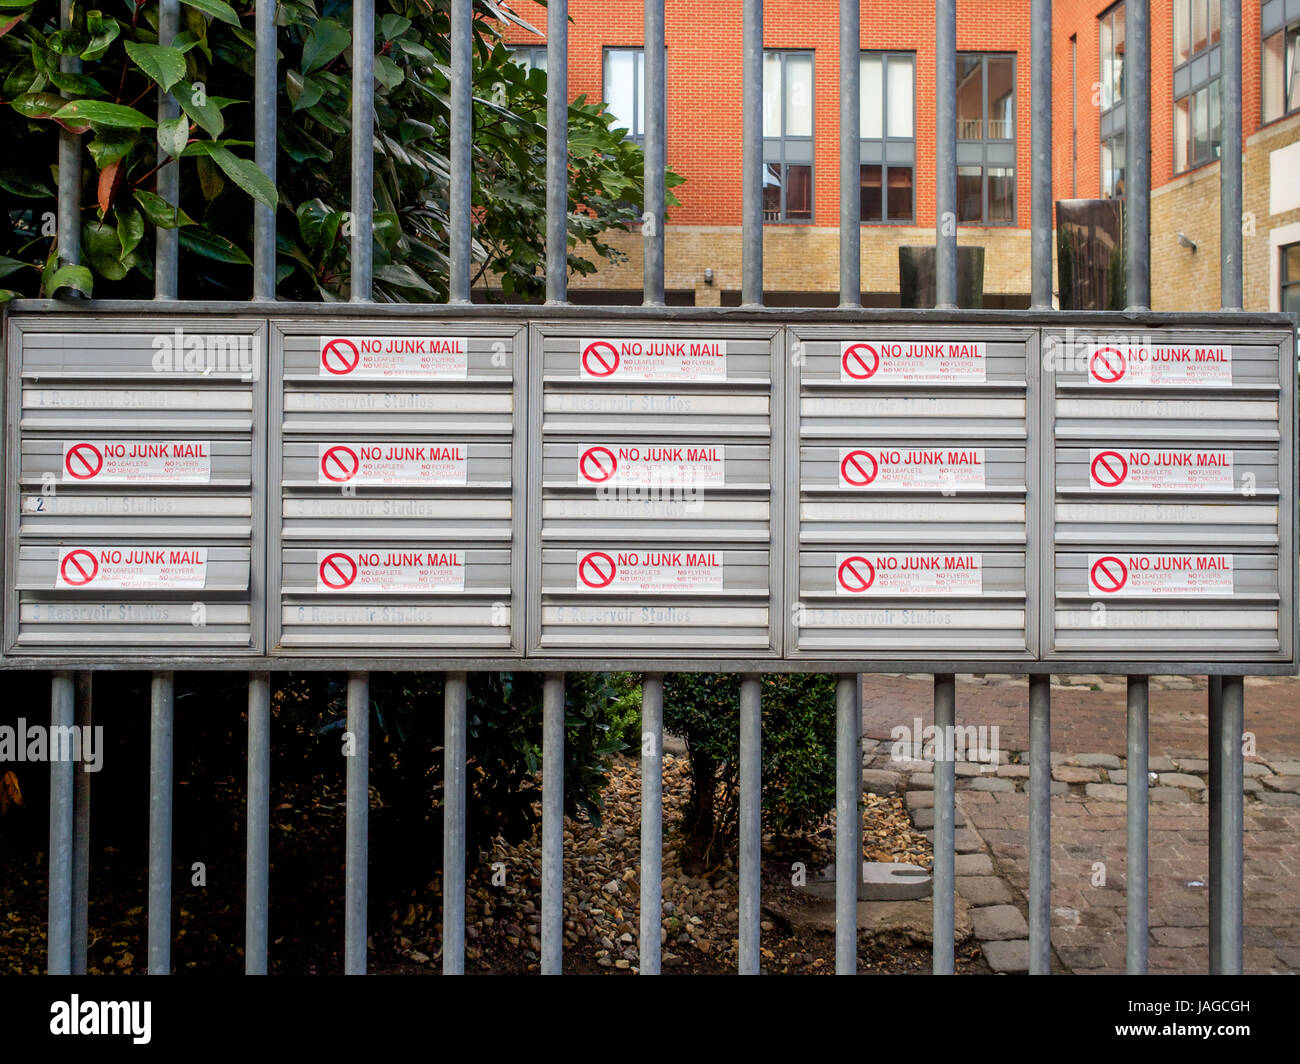 Letter boxes marked NO JUNK MAIL, near Cable Street, London, England. - Stock Image